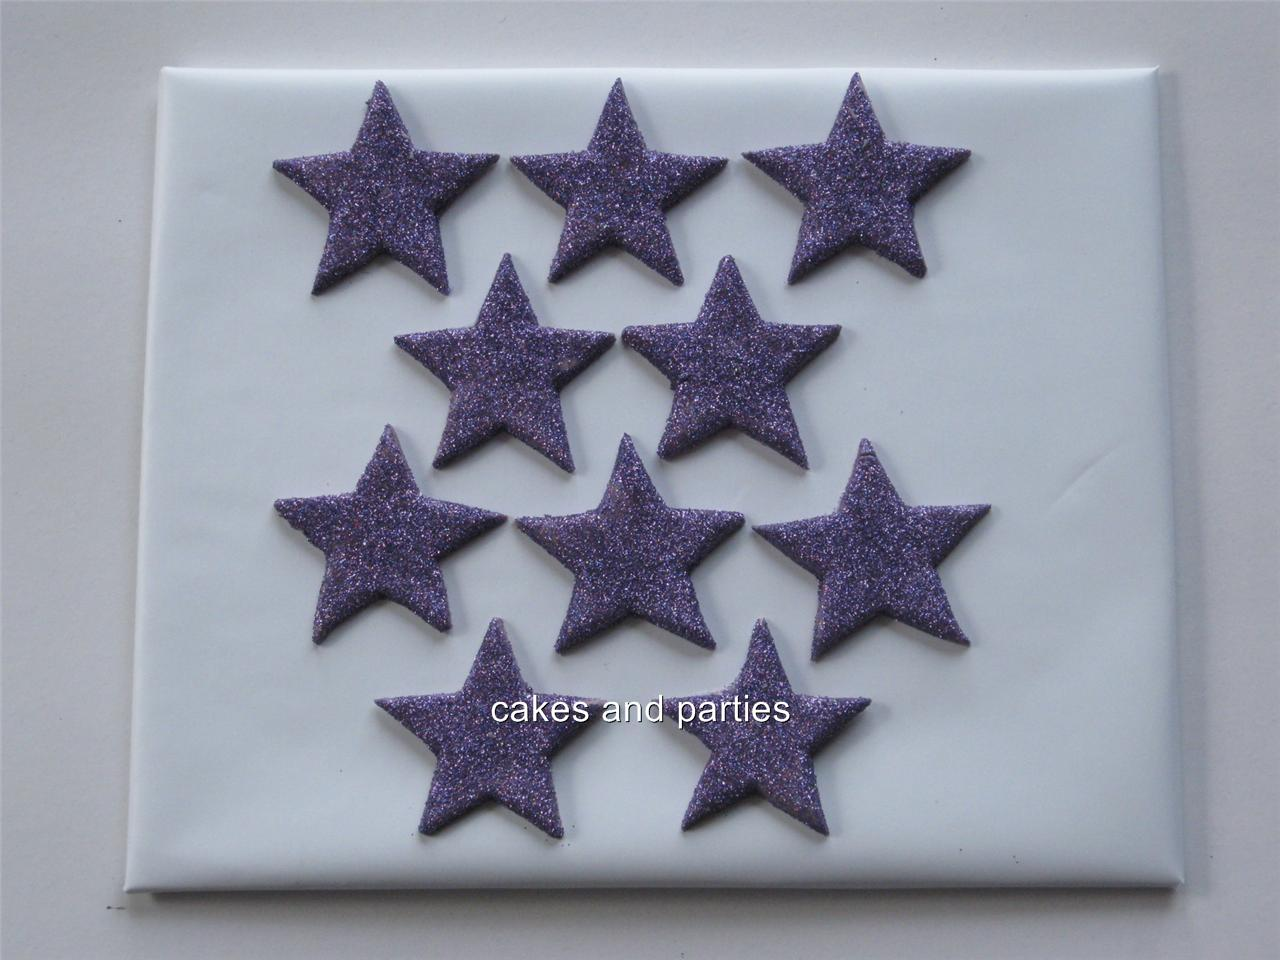 Edible Cake Decorations Stars : 10xEDIBLE GLITTER STARS. CAKE DECORATIONS - VARIOUS ...